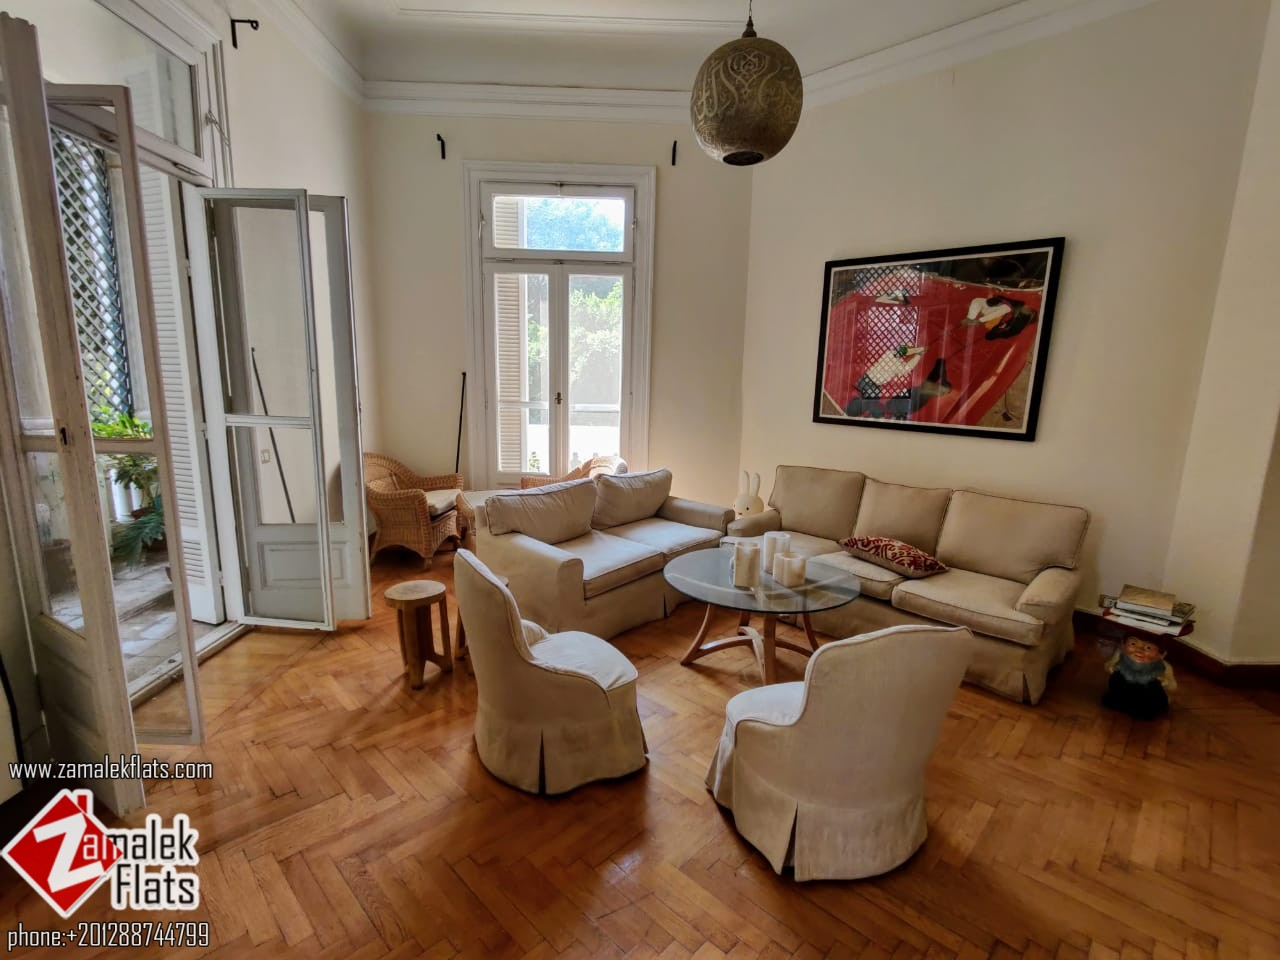 Nile View Apartment For Rent In Historical Building In Zamalek